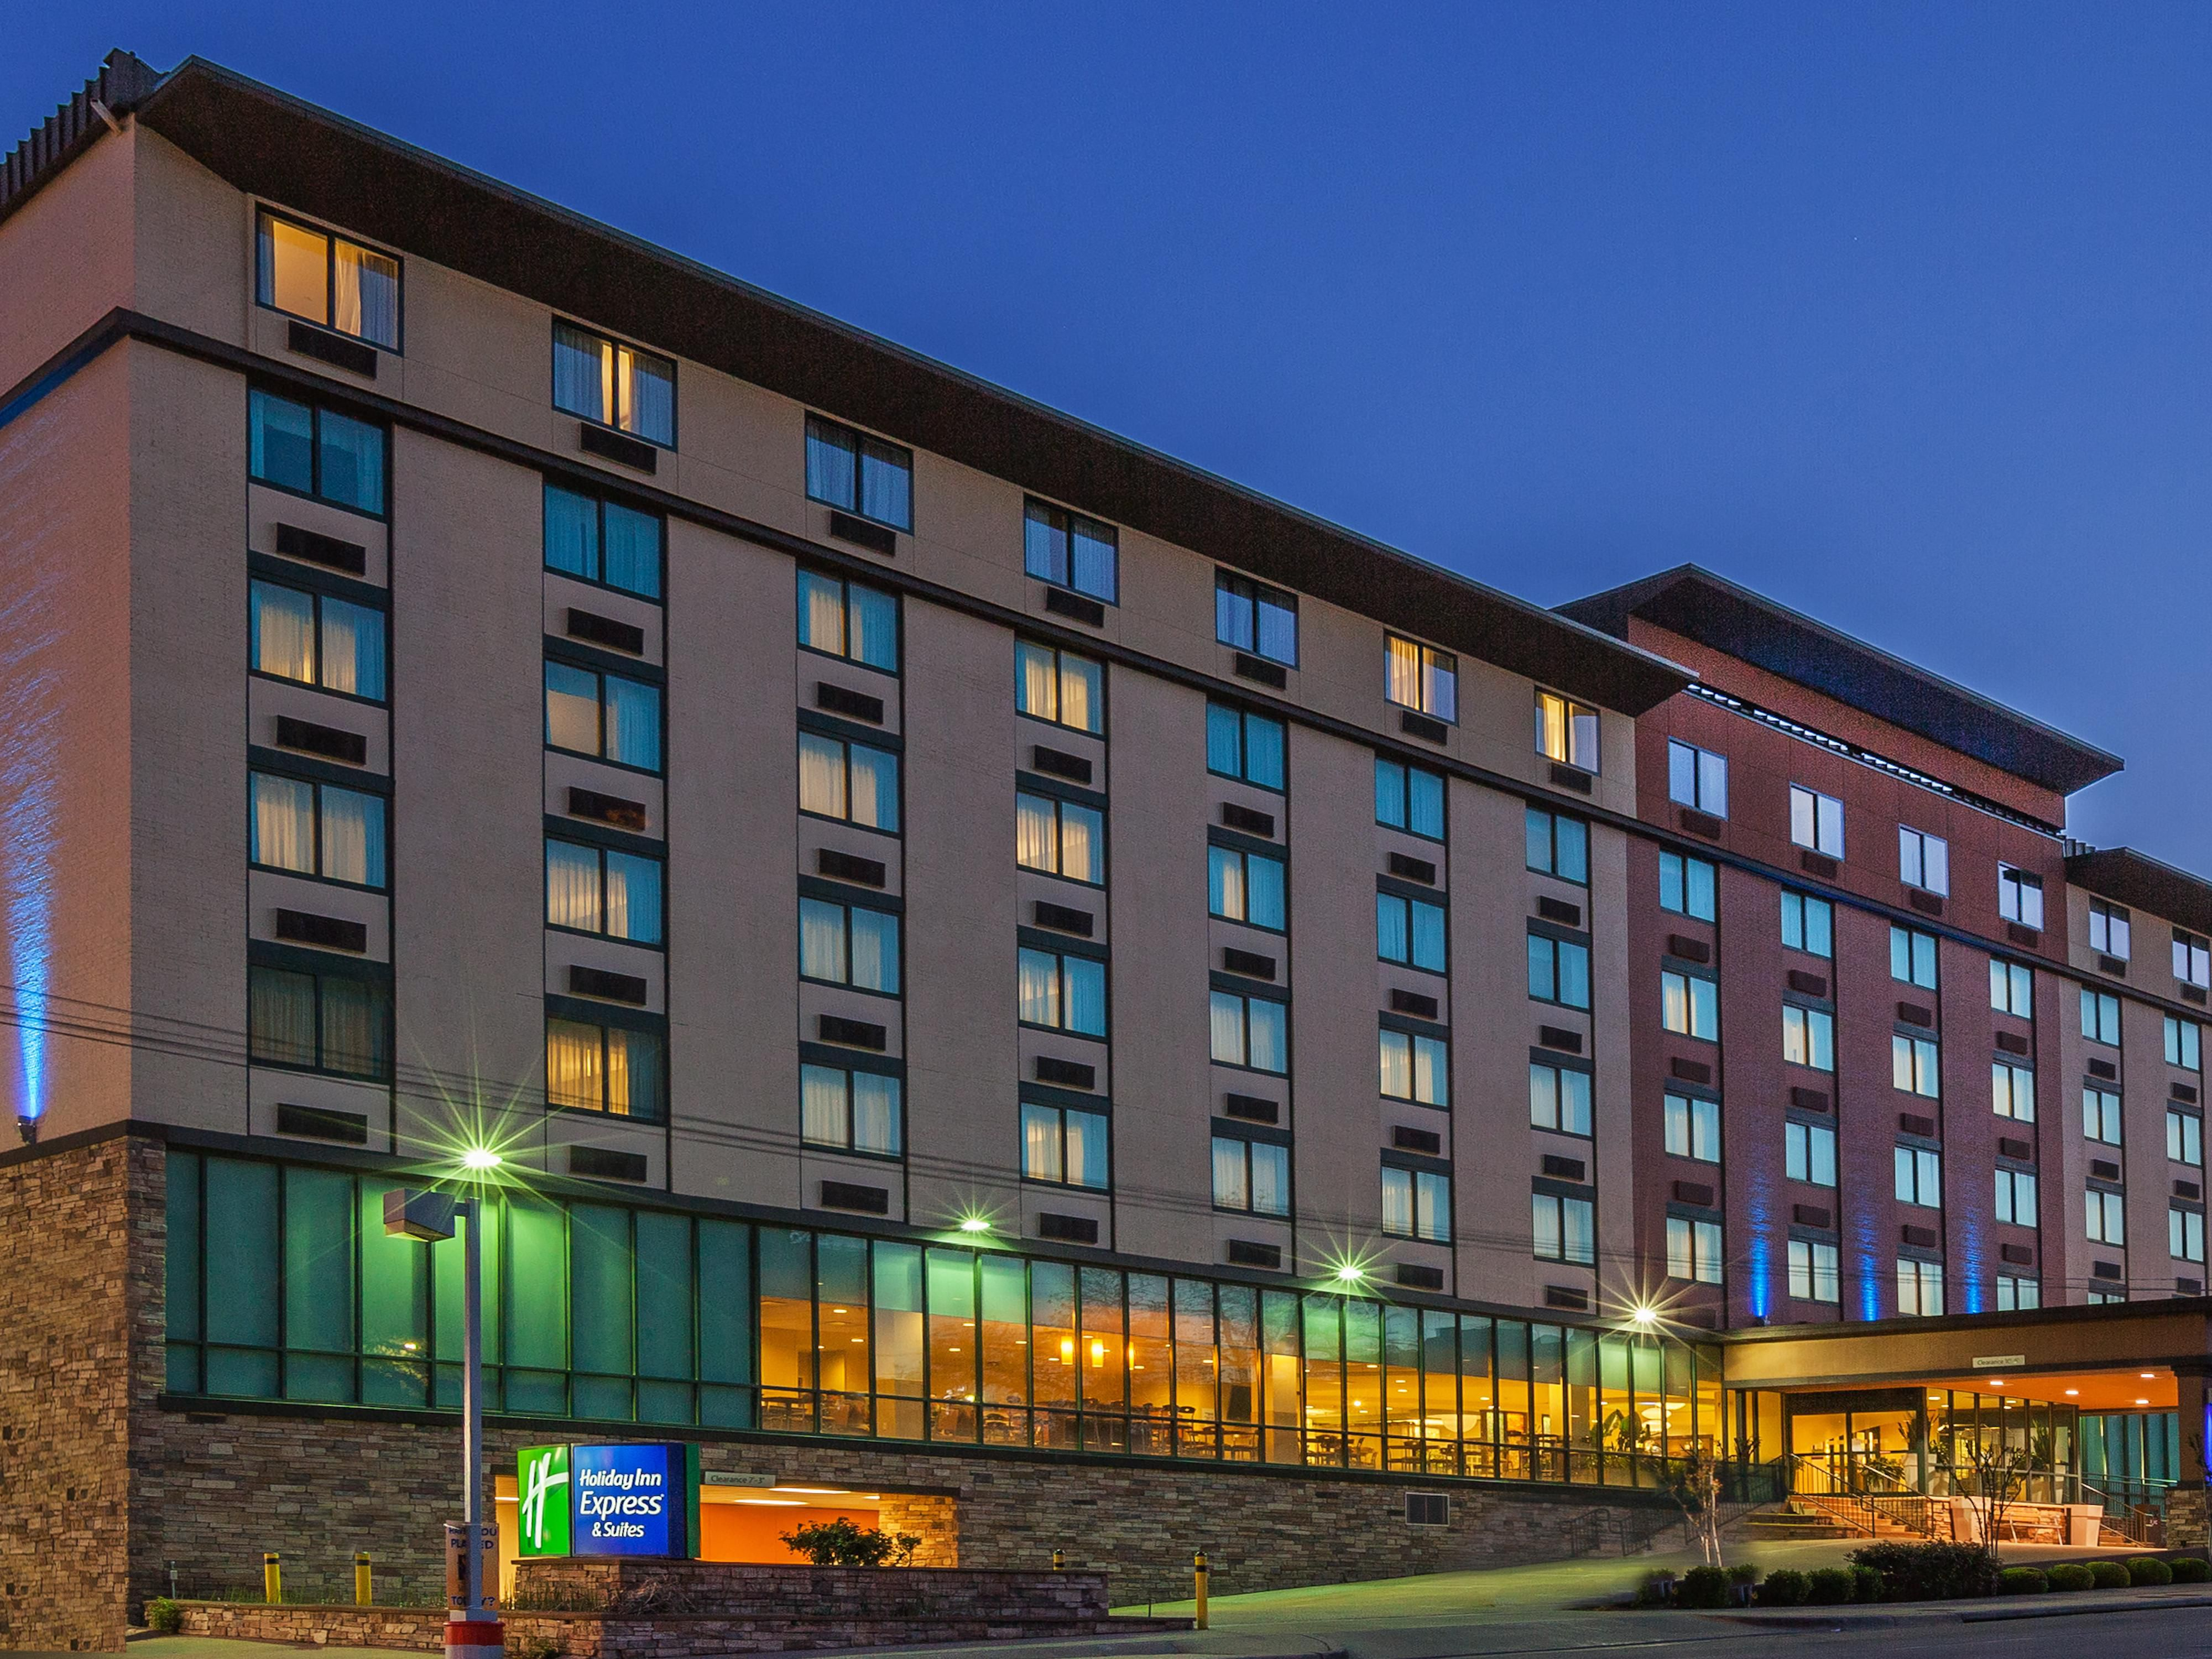 Holiday Inn Express Amp Suites Fort Worth Downtown Hotel By Ihg